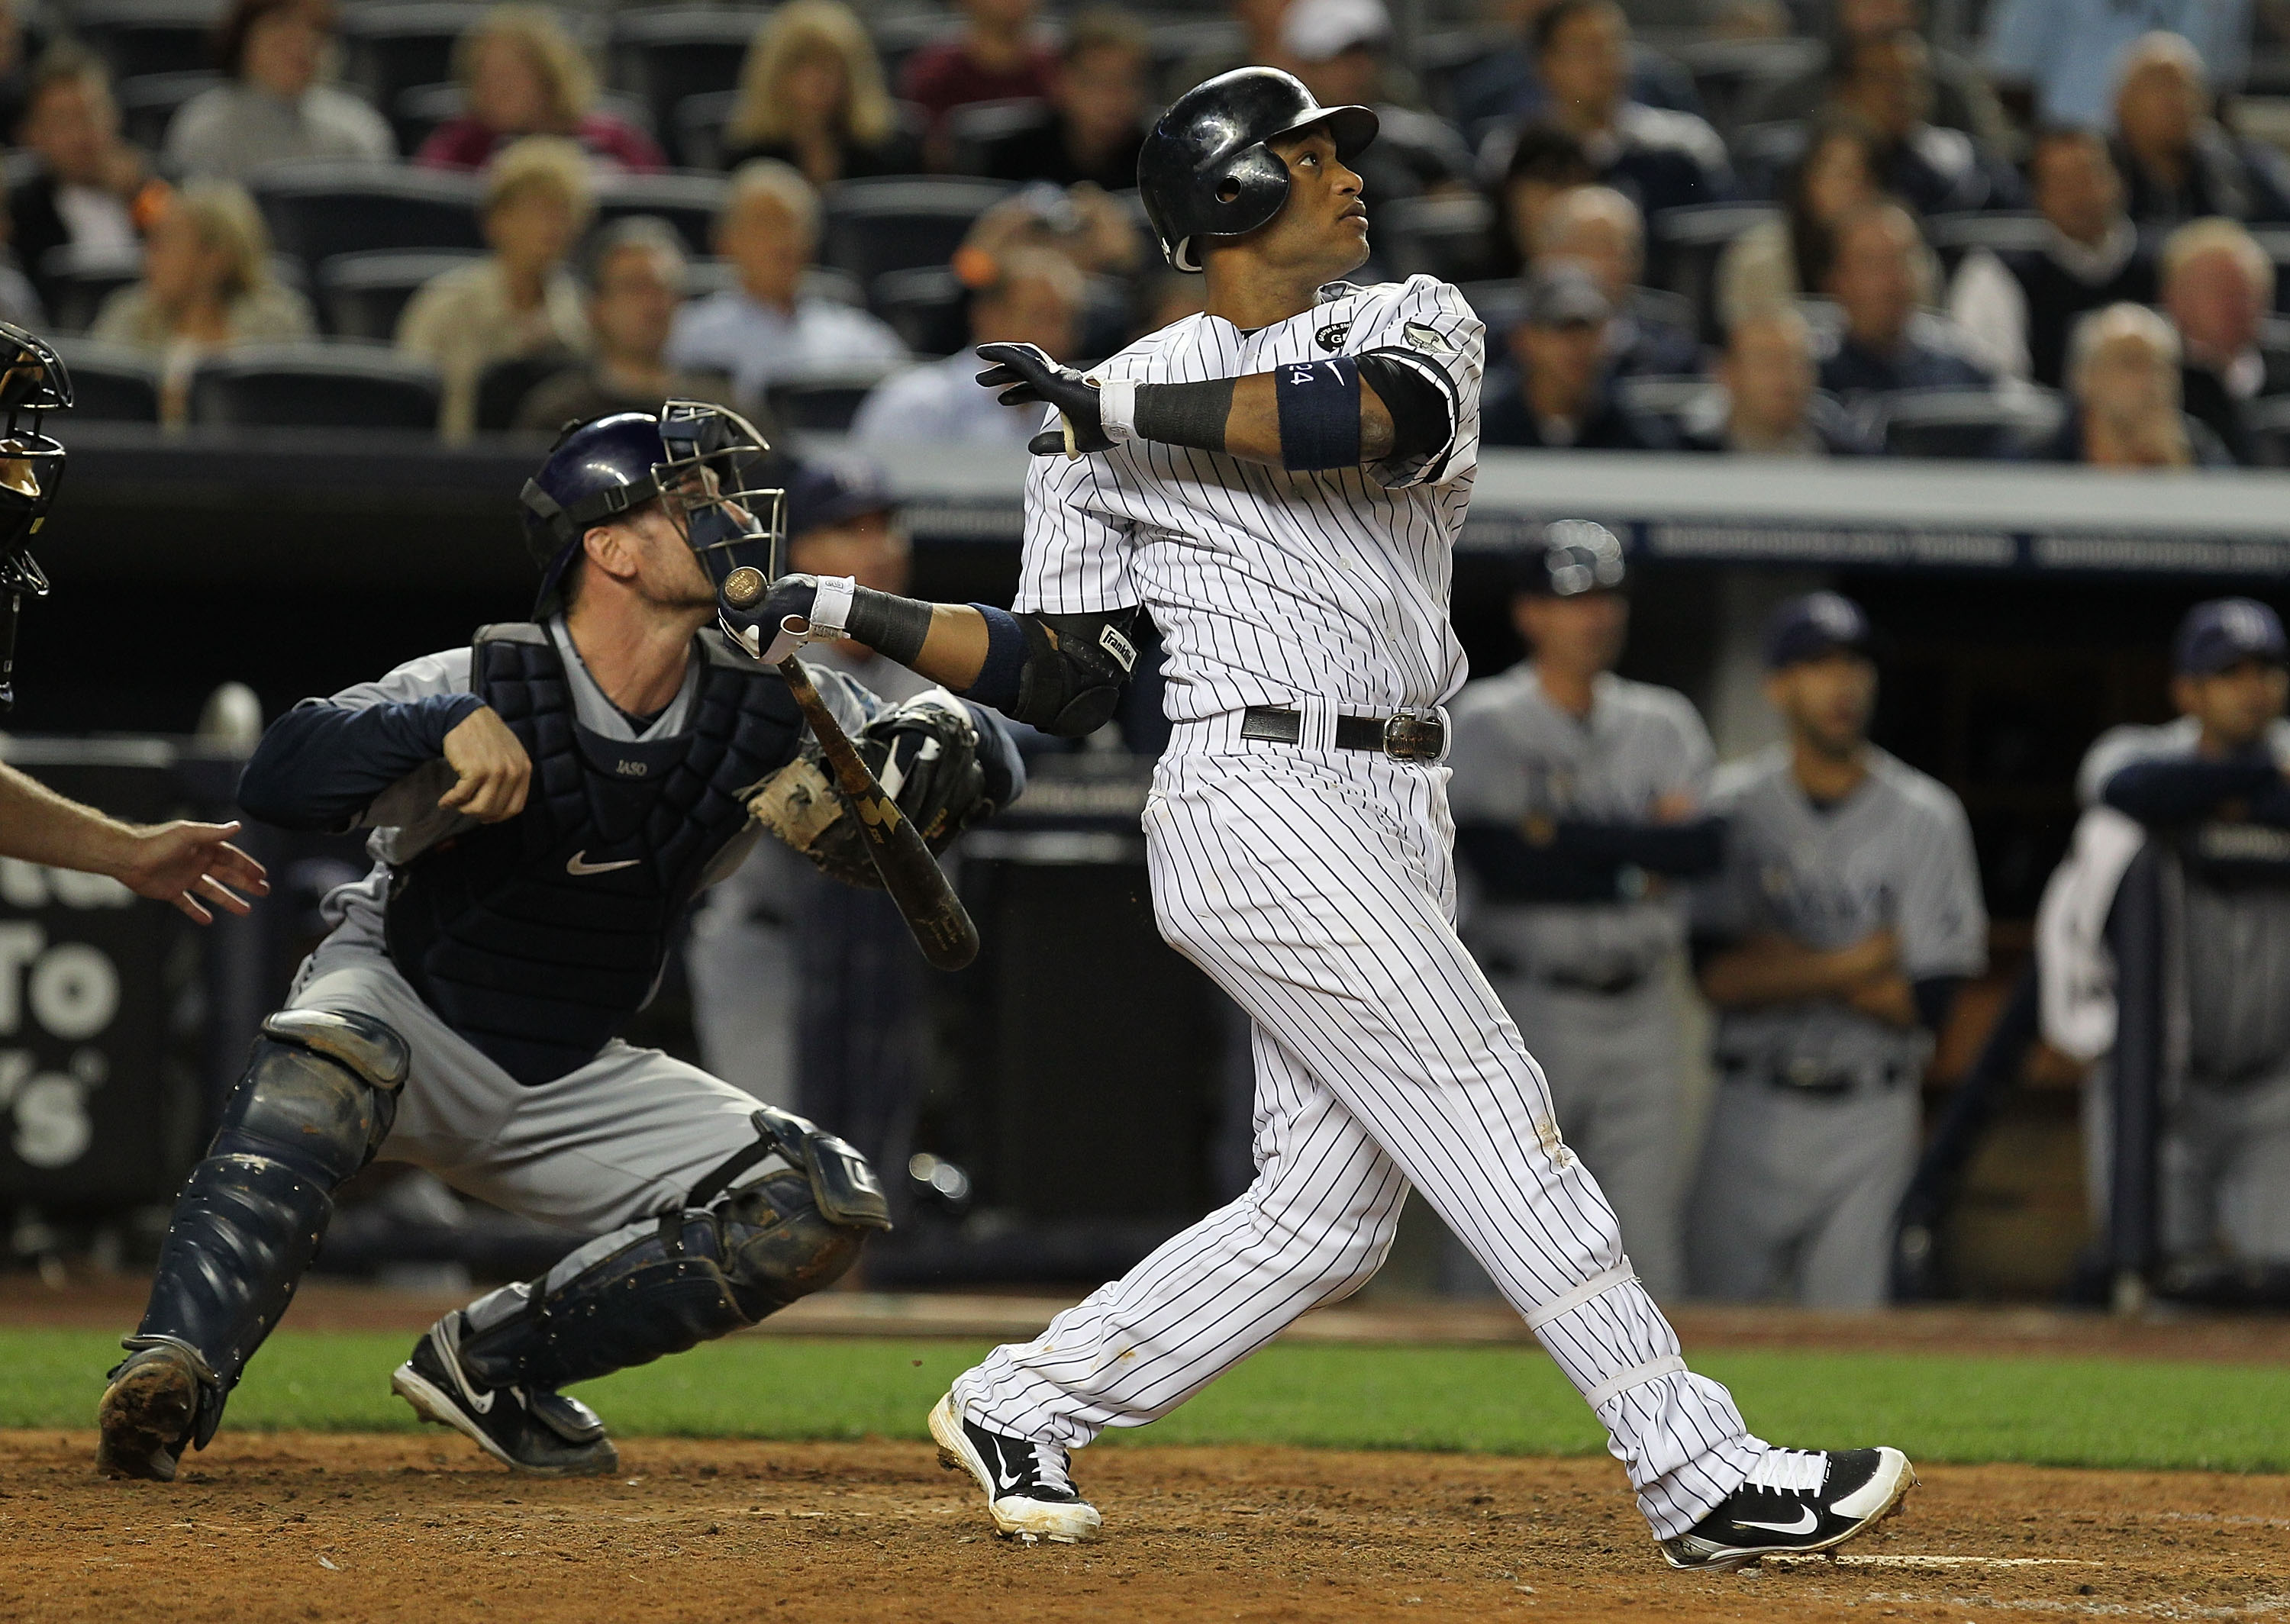 NEW YORK - SEPTEMBER 21:  Robinson Cano #24 of the New York Yankees drives in two runs with a double in the seventh inning against  the Tampa Bay Rays during their game on September 21, 2010 at Yankee Stadium in the Bronx borough of New York City.  (Photo